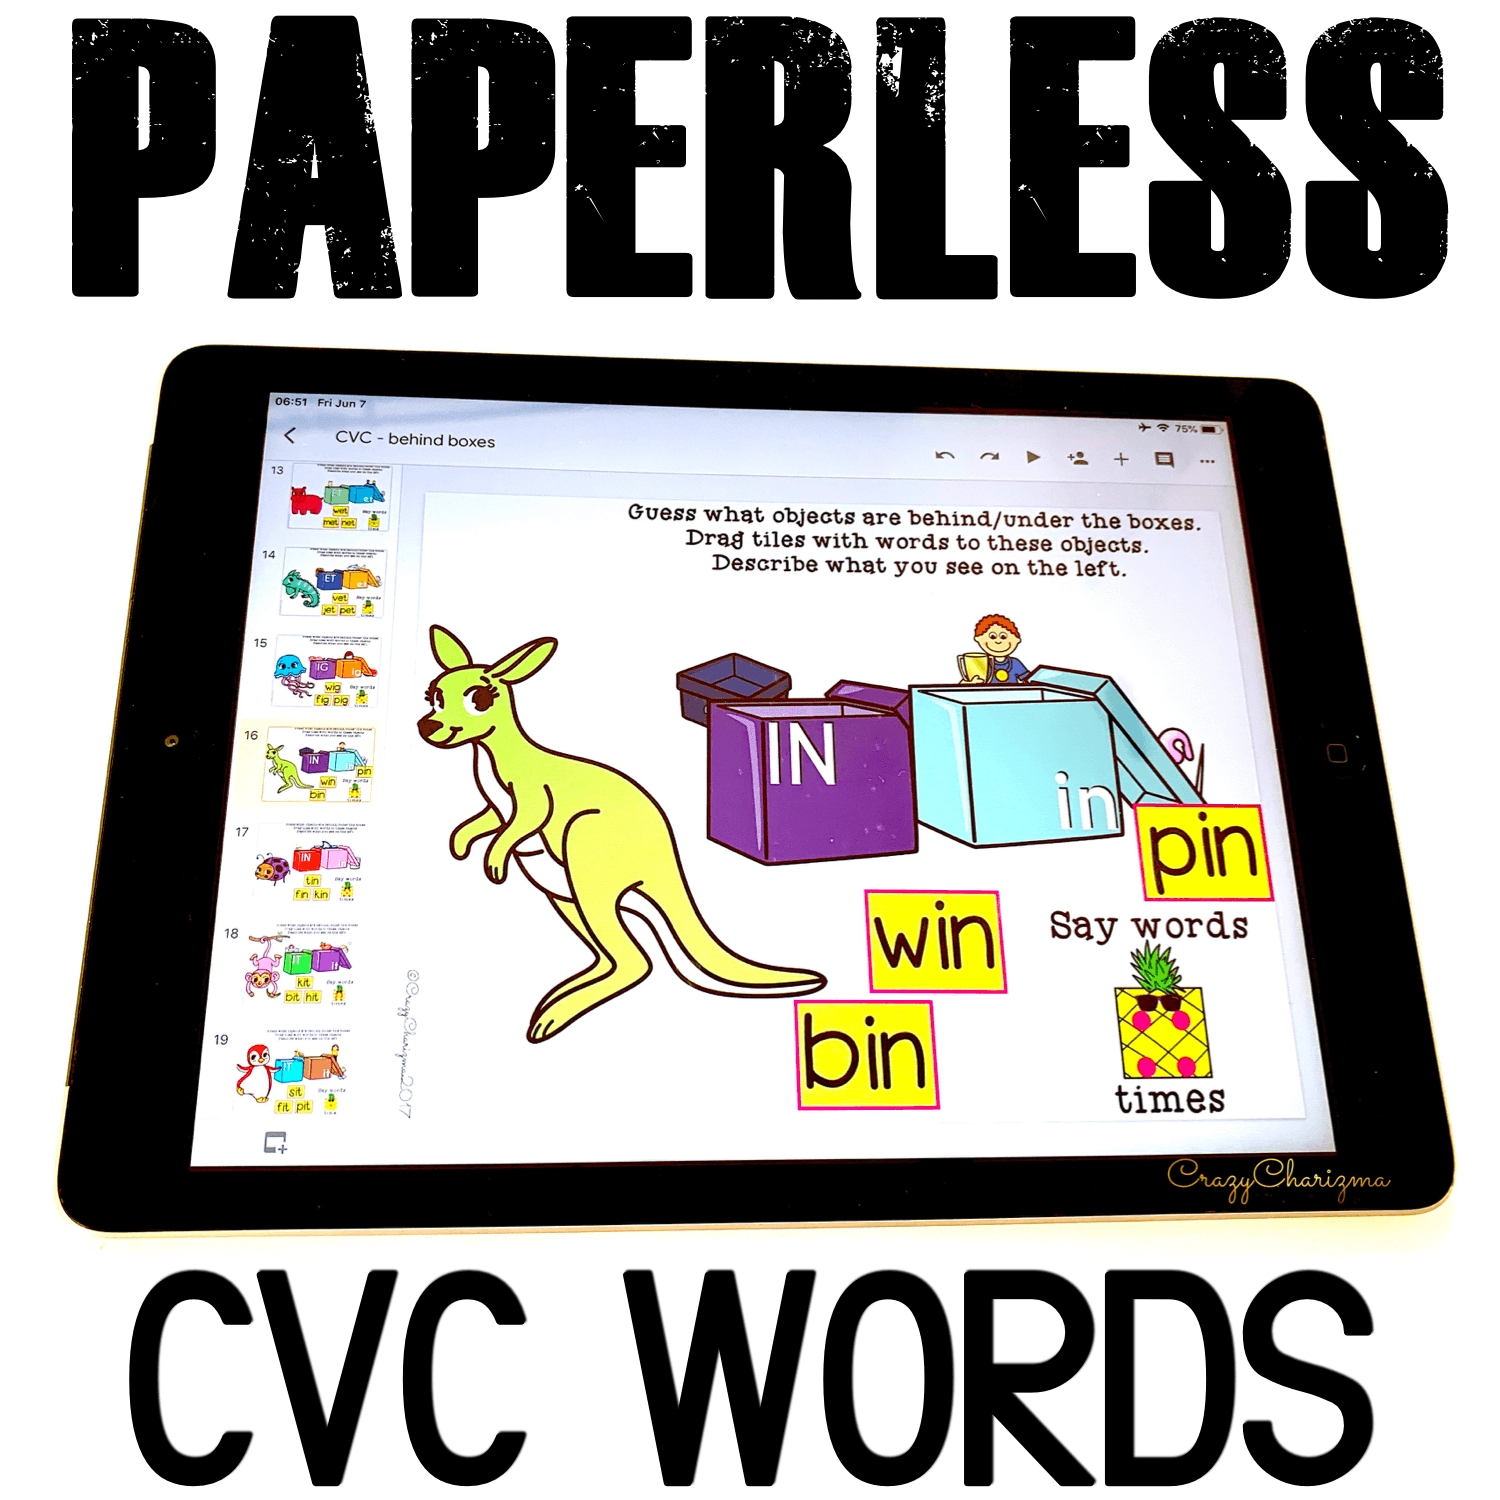 Google Classroom Activities for Kindergarten. CVC Words Games. Need fun and simple practice of CVC words? Grab these activities for Google Classroom. Perfect for literacy centers, guided reading groups, homework and 1:1 work. #CrazyCharizma #GoogleClassroom #GoogleClassroomKindergarten #HandsOnActivitiesForKids #PaperlessClassroomElementary #PhonicsGames